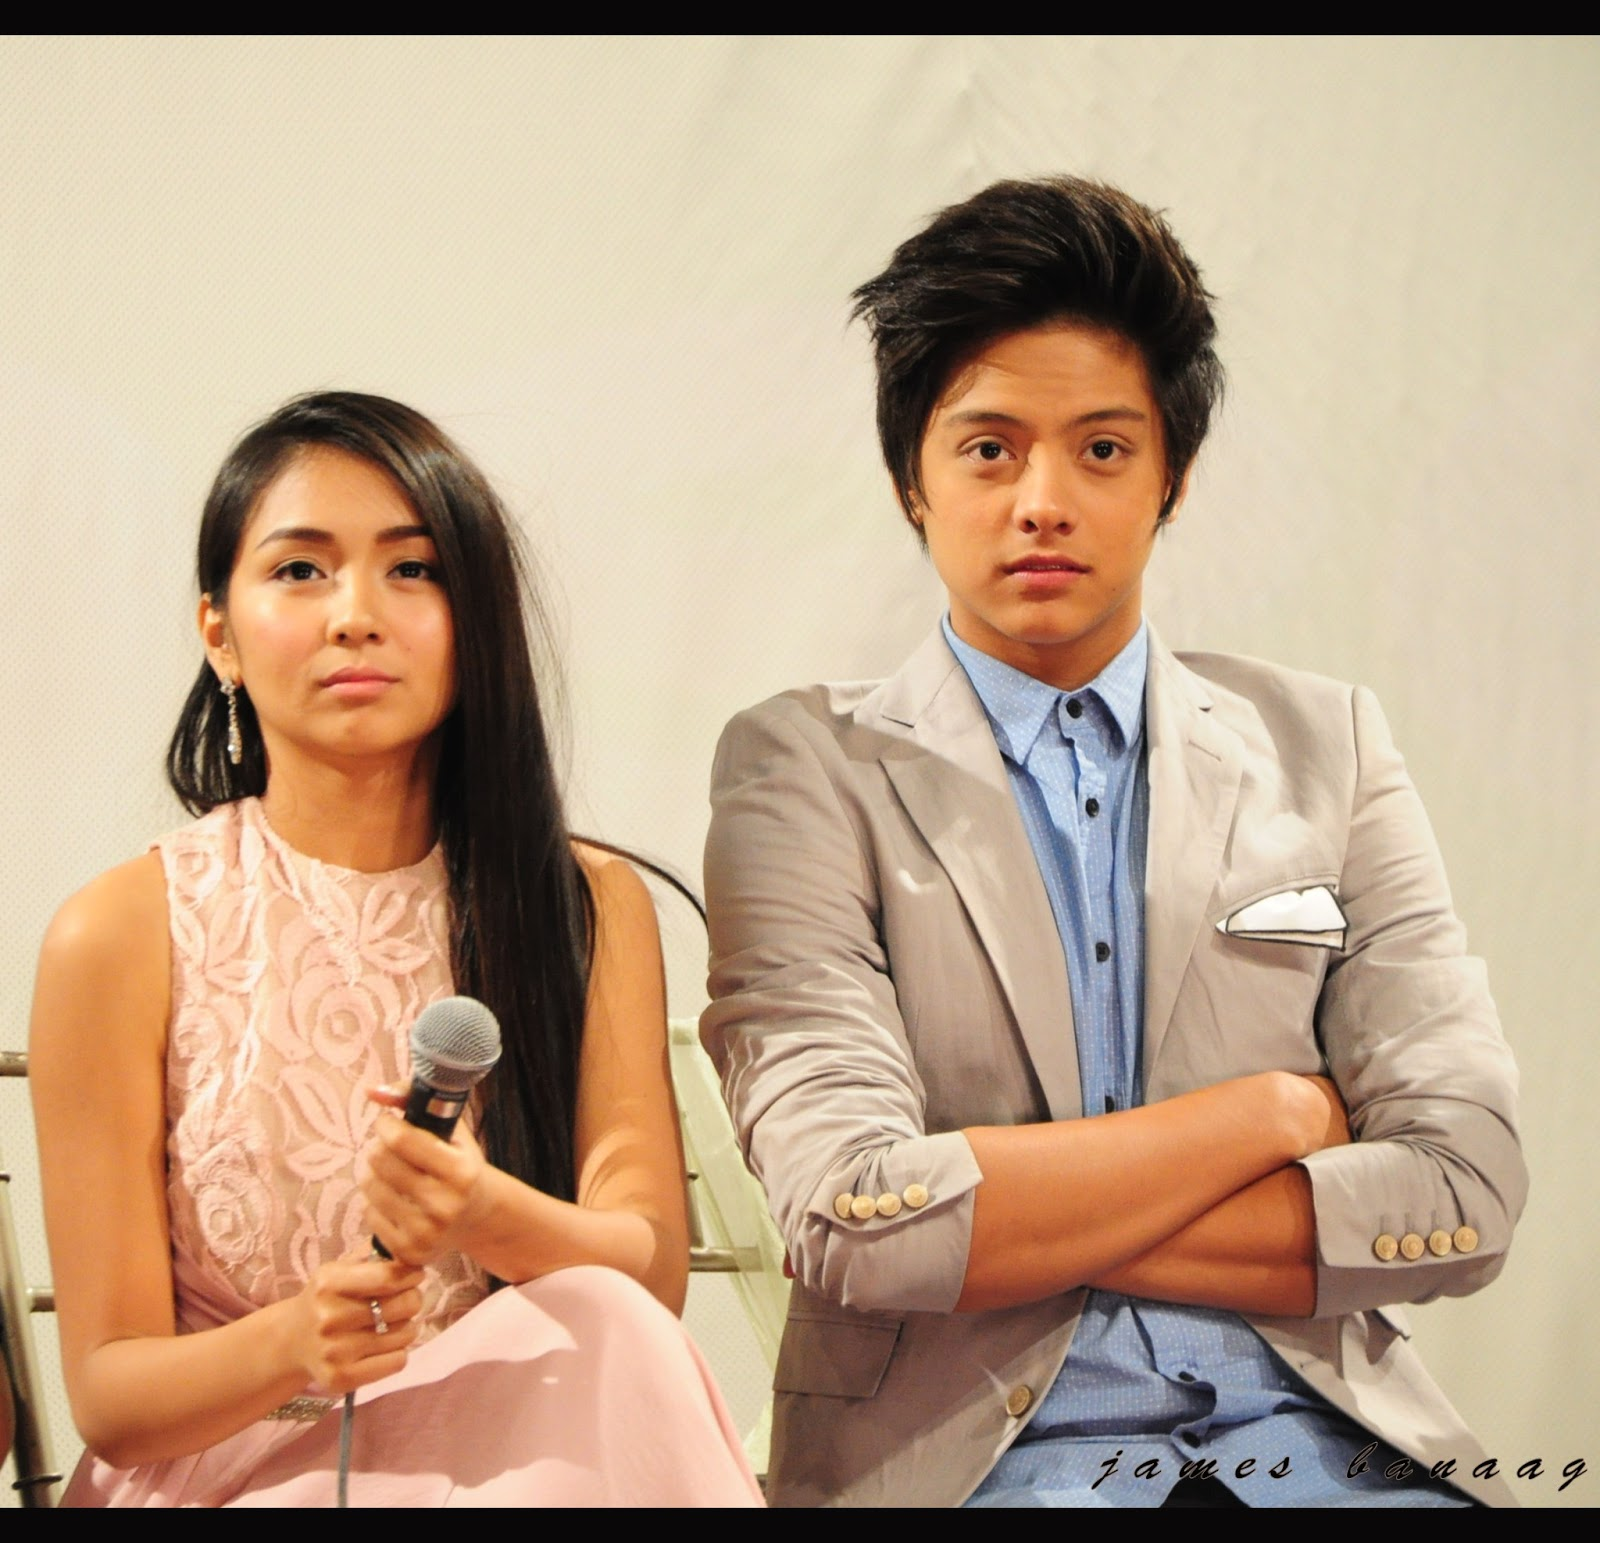 kathryn and daniel in relationship